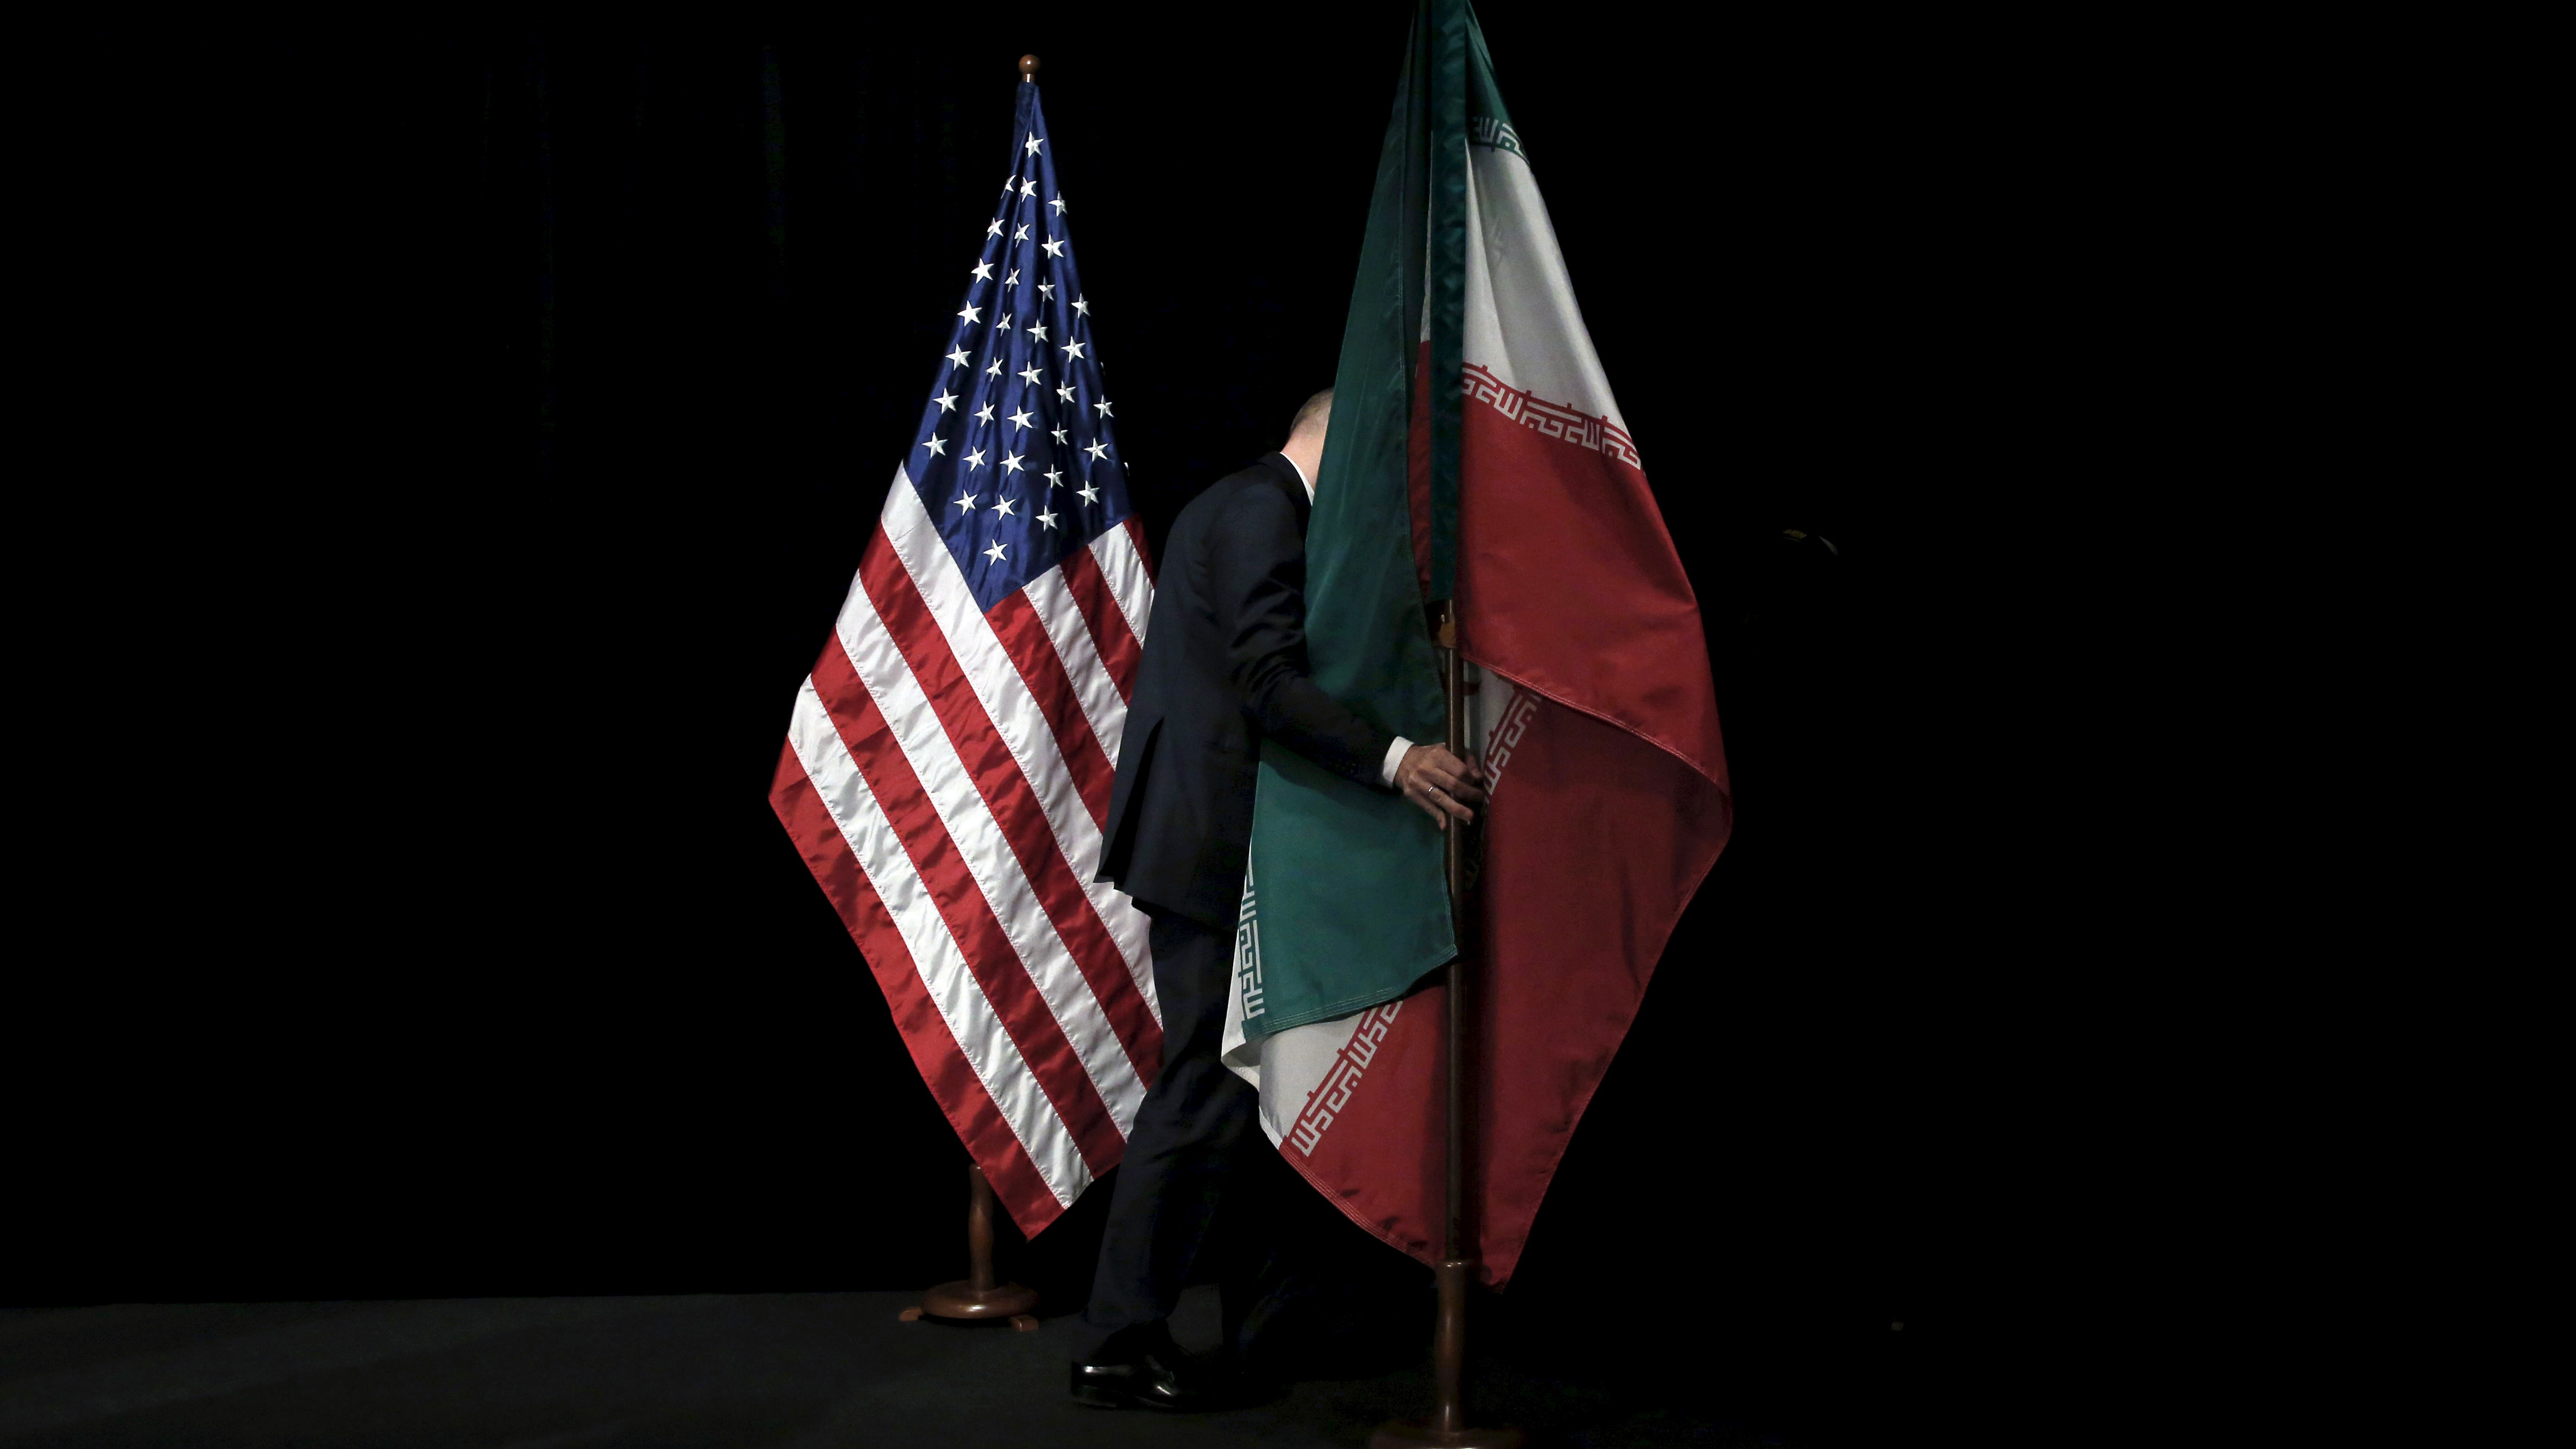 "A staff member removes the Iranian flag from the stage after a group picture with foreign ministers and representatives of Unites States, Iran, China, Russia, Britain, Germany, France and the European Union during the Iran nuclear talks at the Vienna International Center in Vienna, Austria July 14, 2015. Iran and six major world powers reached a nuclear deal on Tuesday, capping more than a decade of on-off negotiations with an agreement that could potentially transform the Middle East, and which Israel called an ""historic surrender"".  REUTERS/Carlos Barria       TPX IMAGES OF THE DAY - GF10000158897"